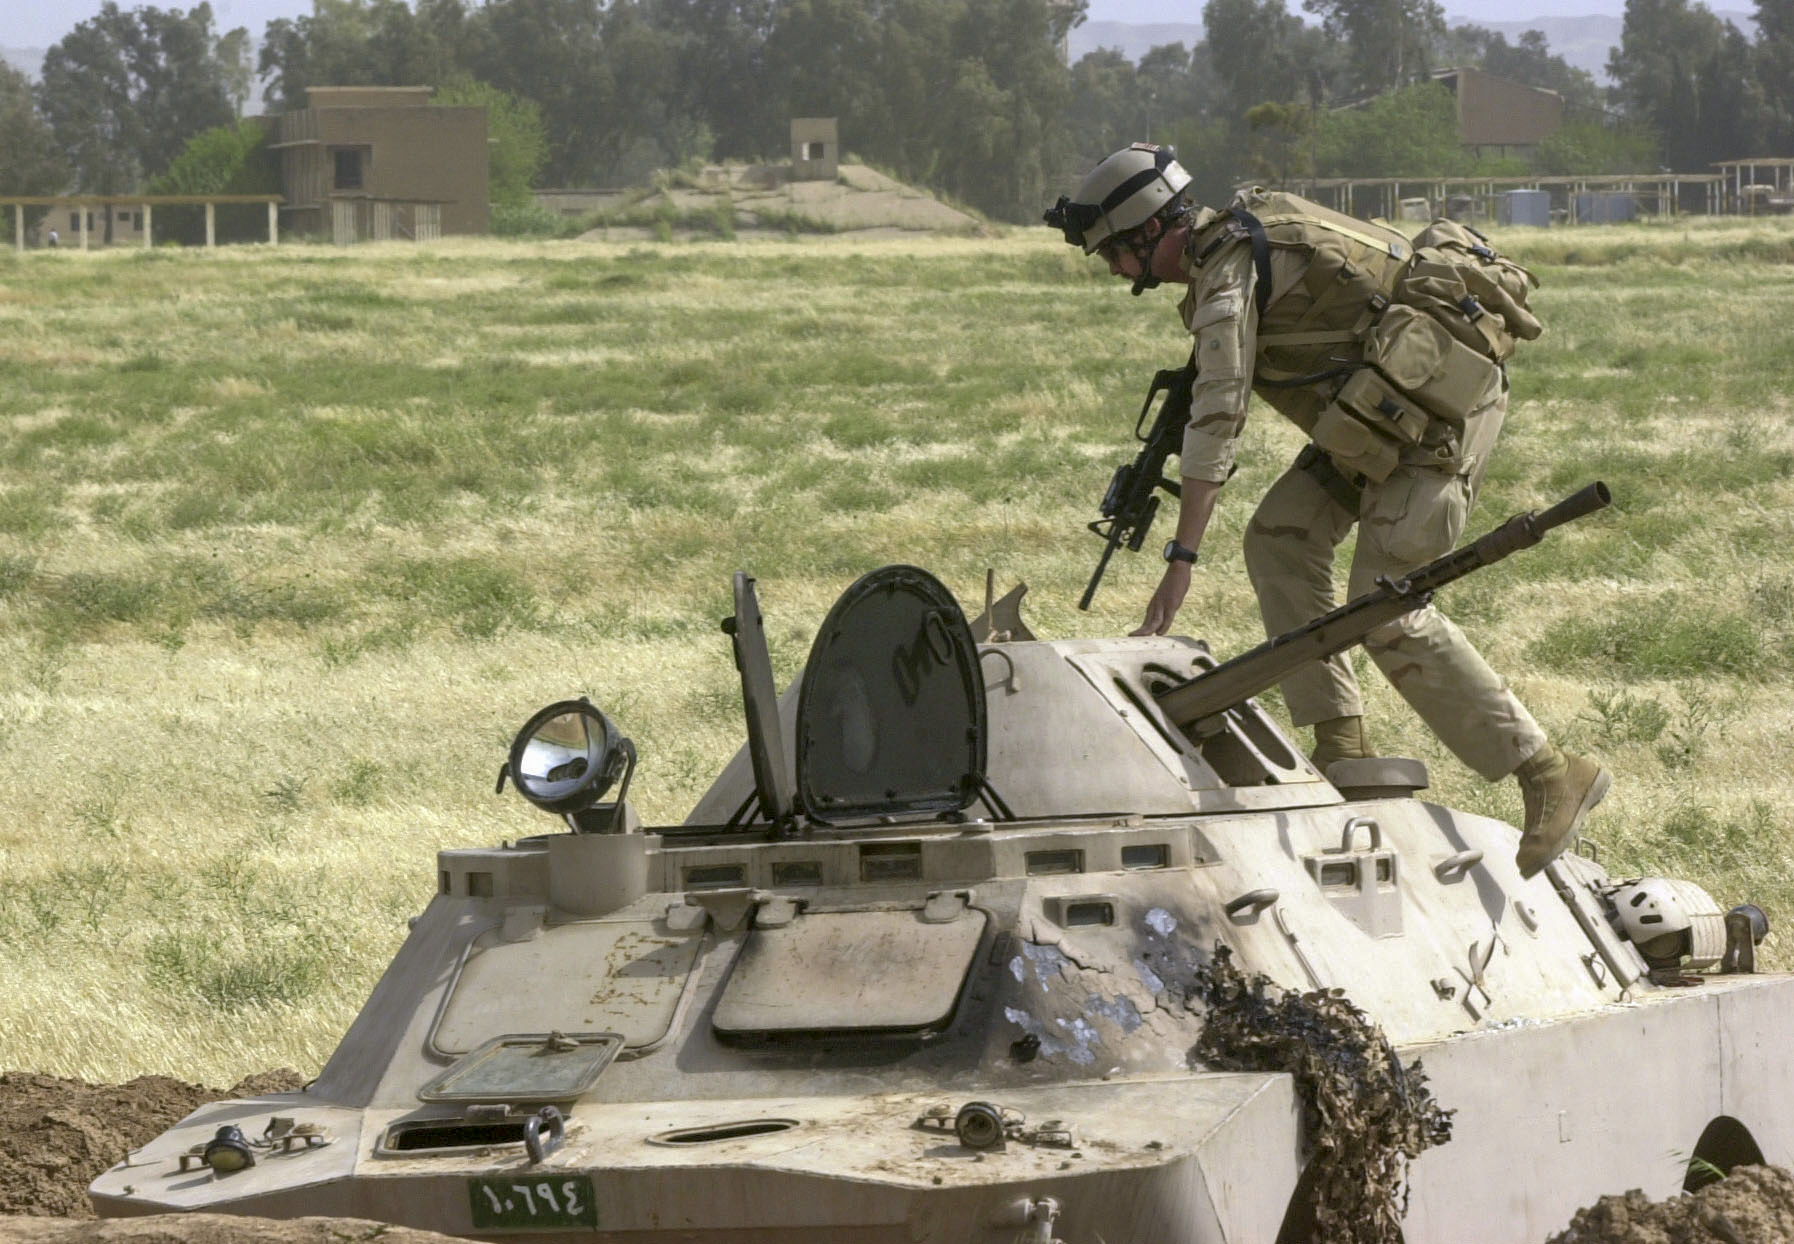 Staff Sgt. Dan Hunter, from Georgia, a member of a U.S. Air Force Global Airfield Assesment Team (GAAT) from McGuire AFB in New Jersey, checks to make sure that an Iraqi armored vehical was clear while surveying a captured Iraqi Helicopter/Air Base on the outskirts of Kirkuk. The GAAT team measured and tested the quality of the runways and parking ramps to see if they could support the weight of heavy aircraft for use by the US military. (Alan Lessig/Air Force Times)